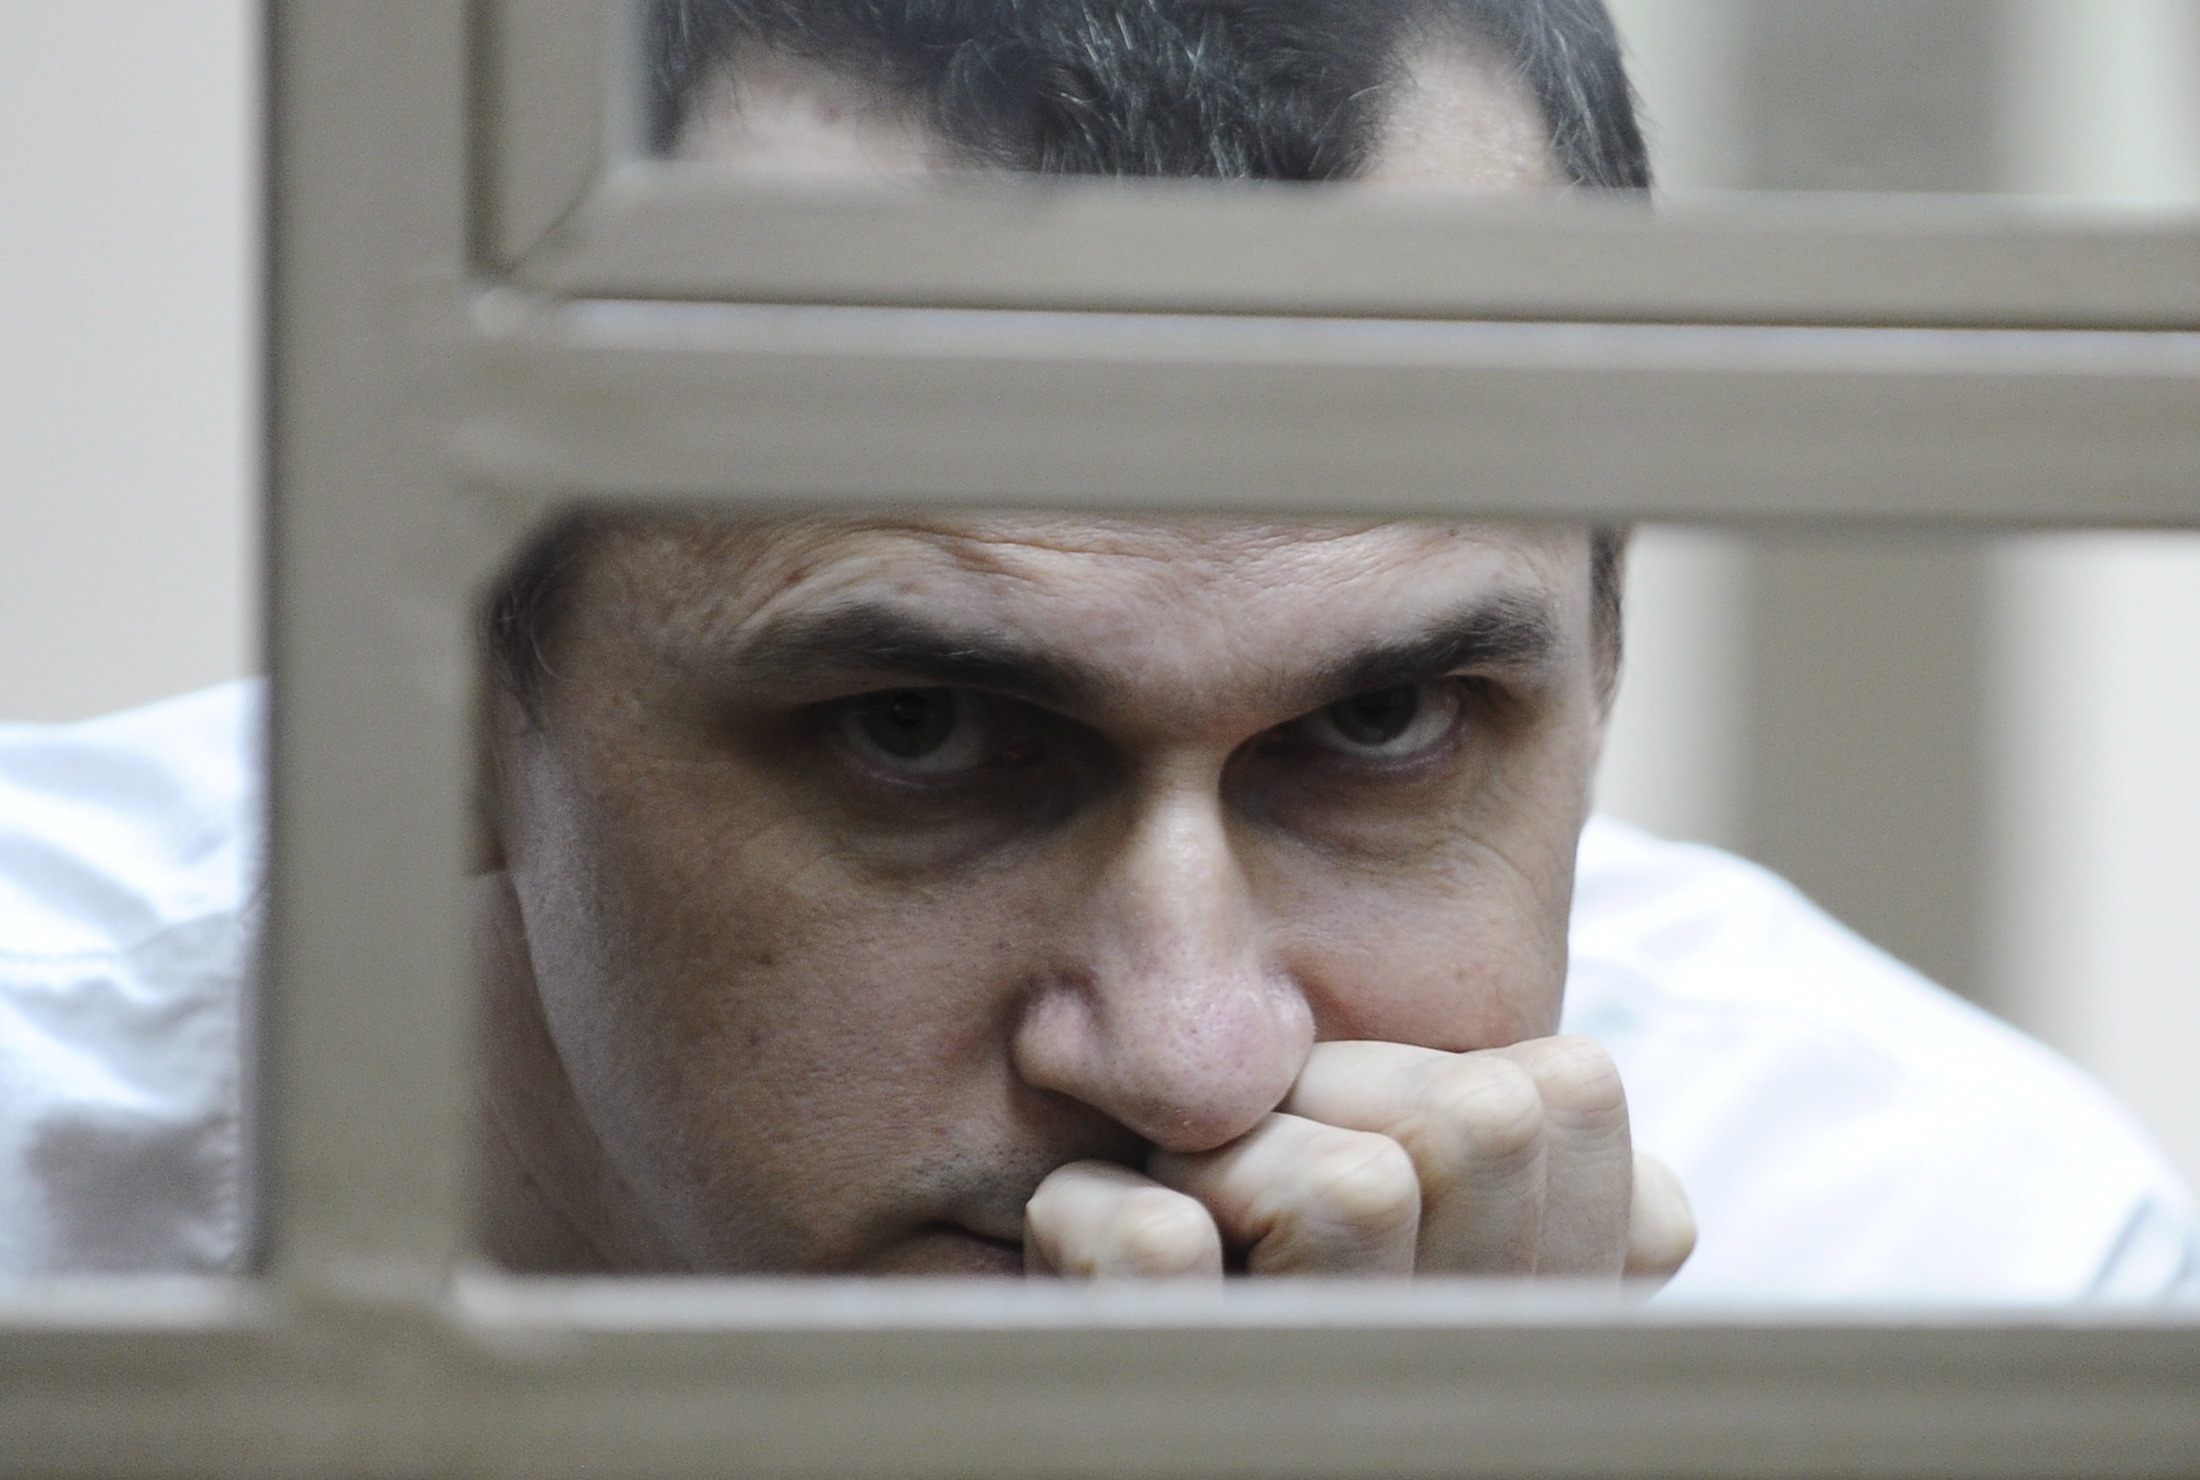 Oleg Sentsov inside a defendants' cage during a hearing at a military court in the city of Rostov-on-Don, 2015.